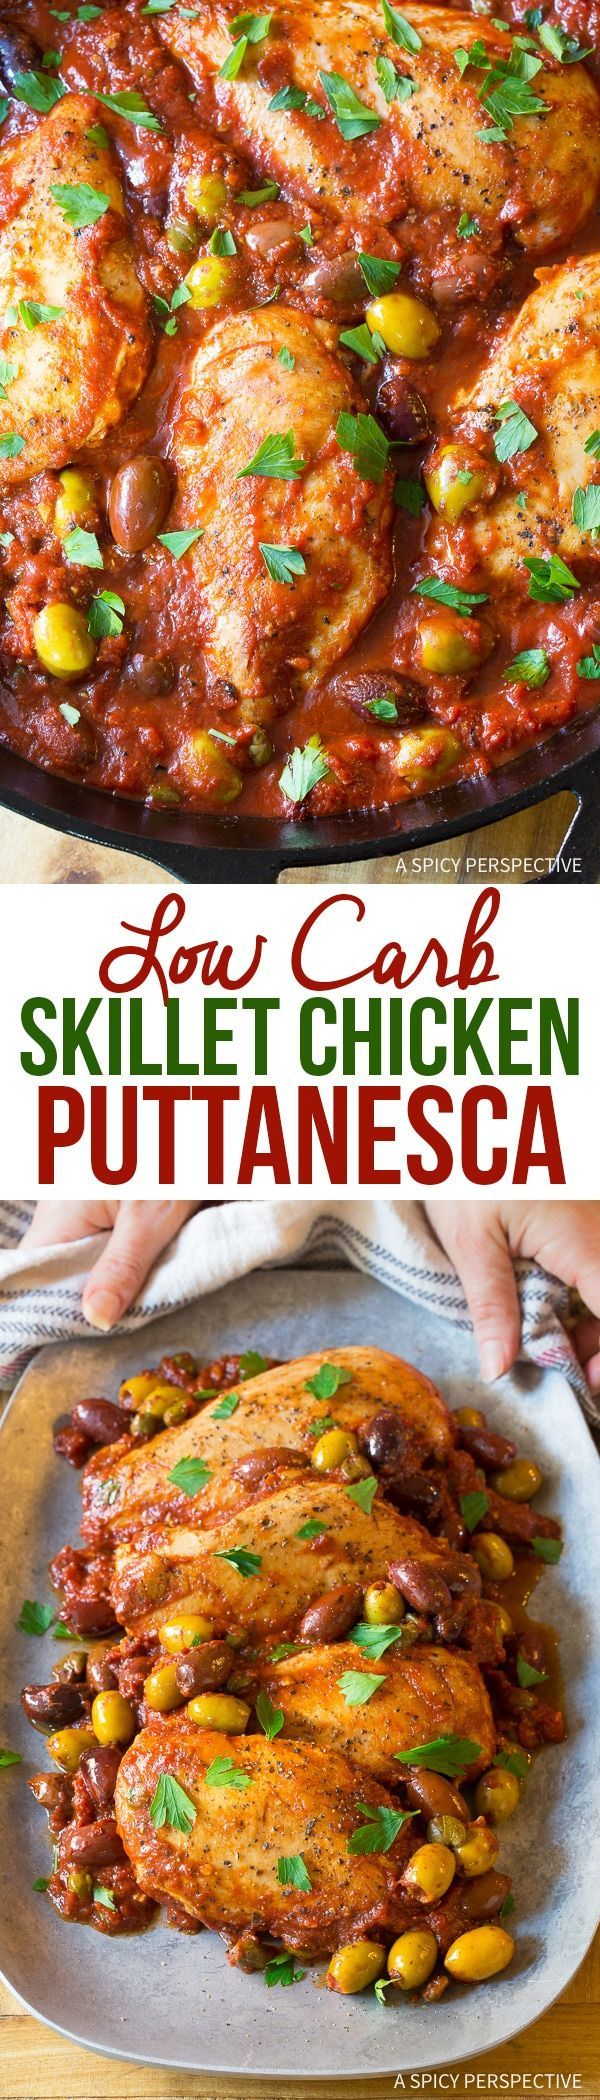 Skillet Chicken Puttanesca Recipe - A simple rustic Italian meal with briny olives and tomatoes. This low carb recipe is easy bright and zesty! via @spicyperspectiv